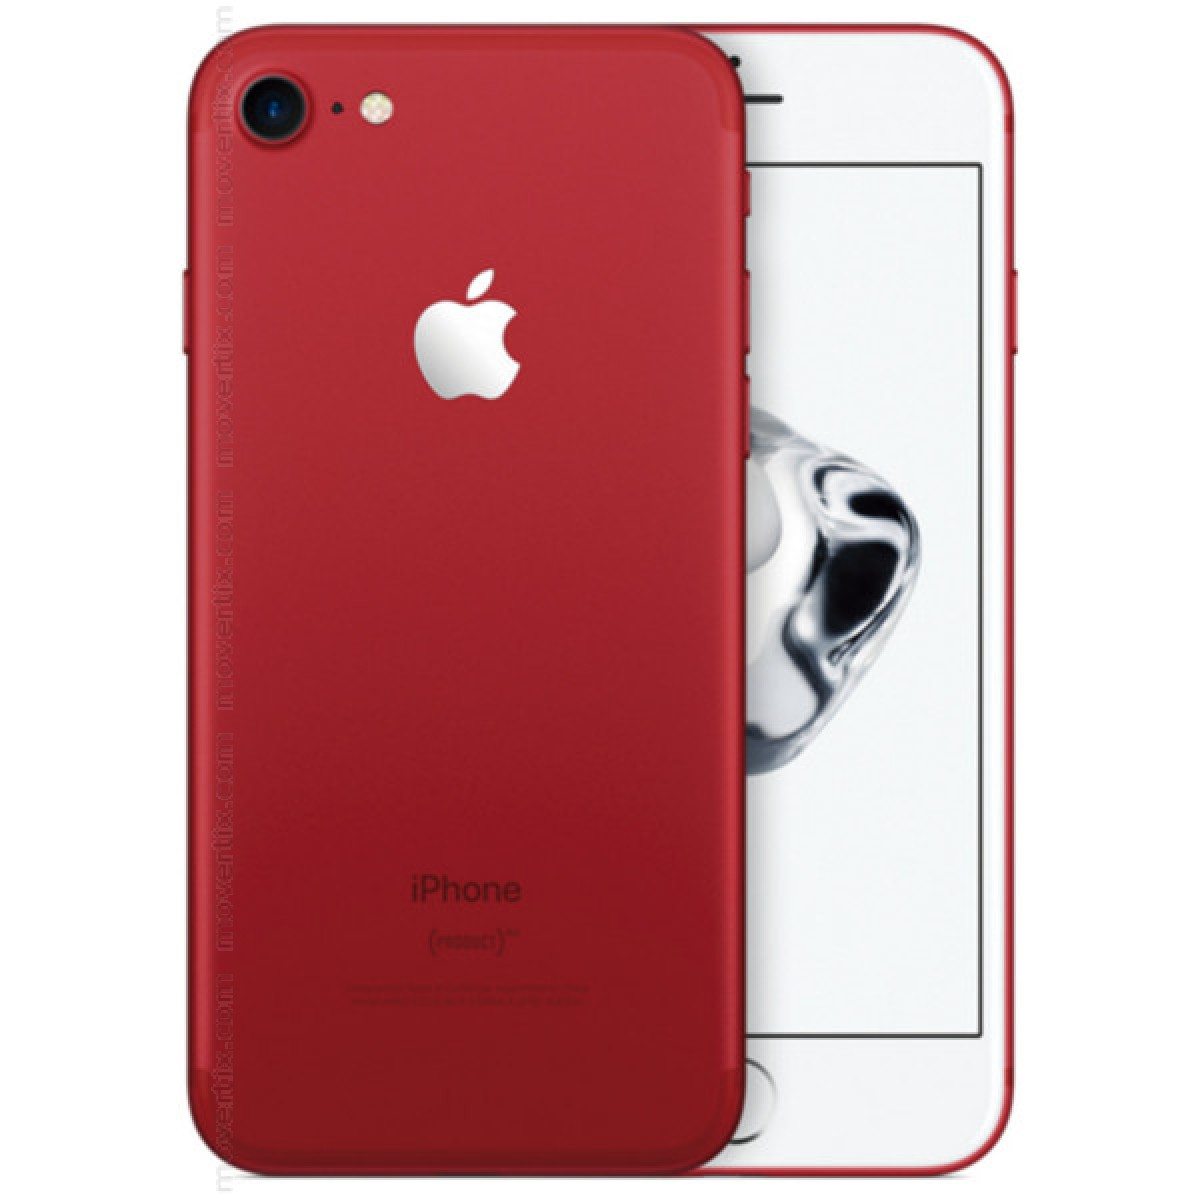 apple iphone 7 red 128gb 0190198360359 movertix mobile. Black Bedroom Furniture Sets. Home Design Ideas